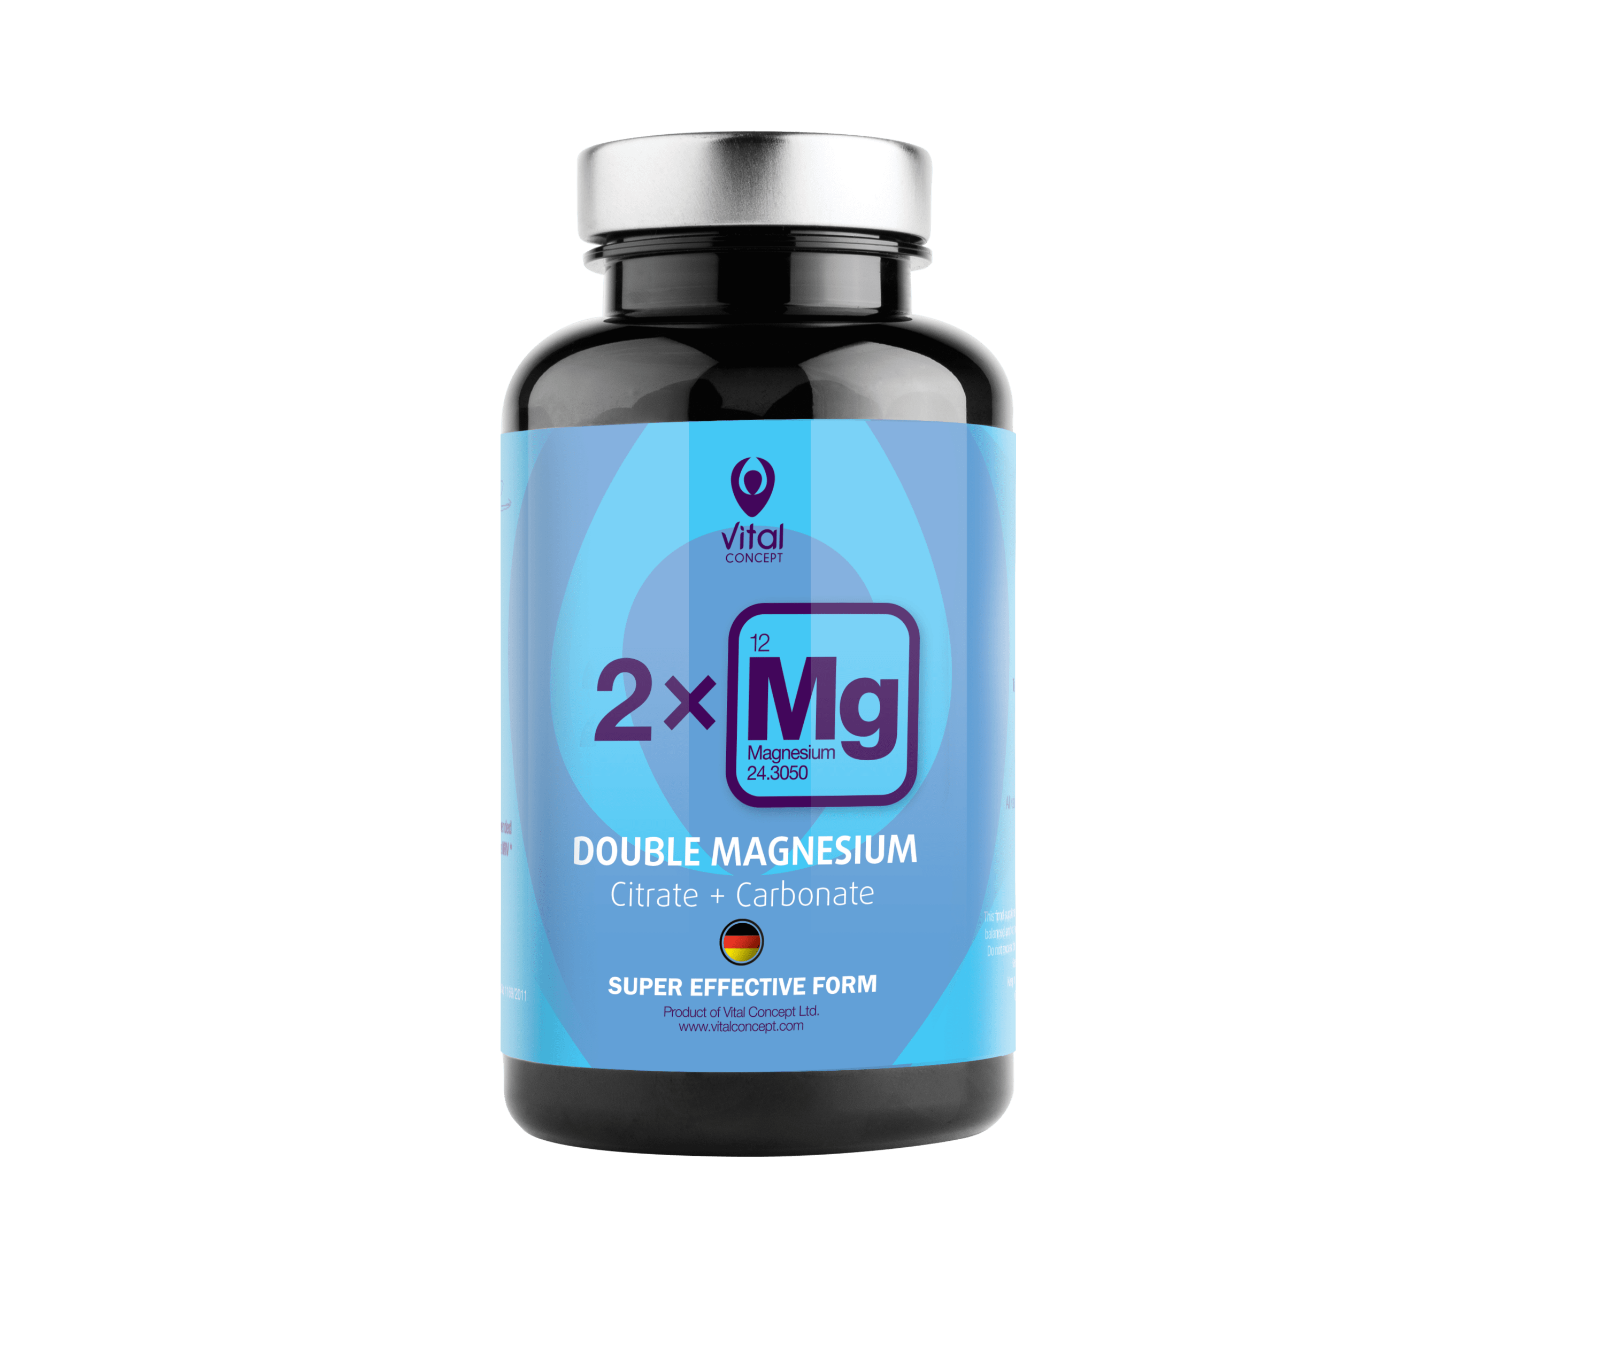 Vital Concept Double Magnesium BLOOD VESSELS AND MUSCLES Natural Antioxidant BIO - $33.99